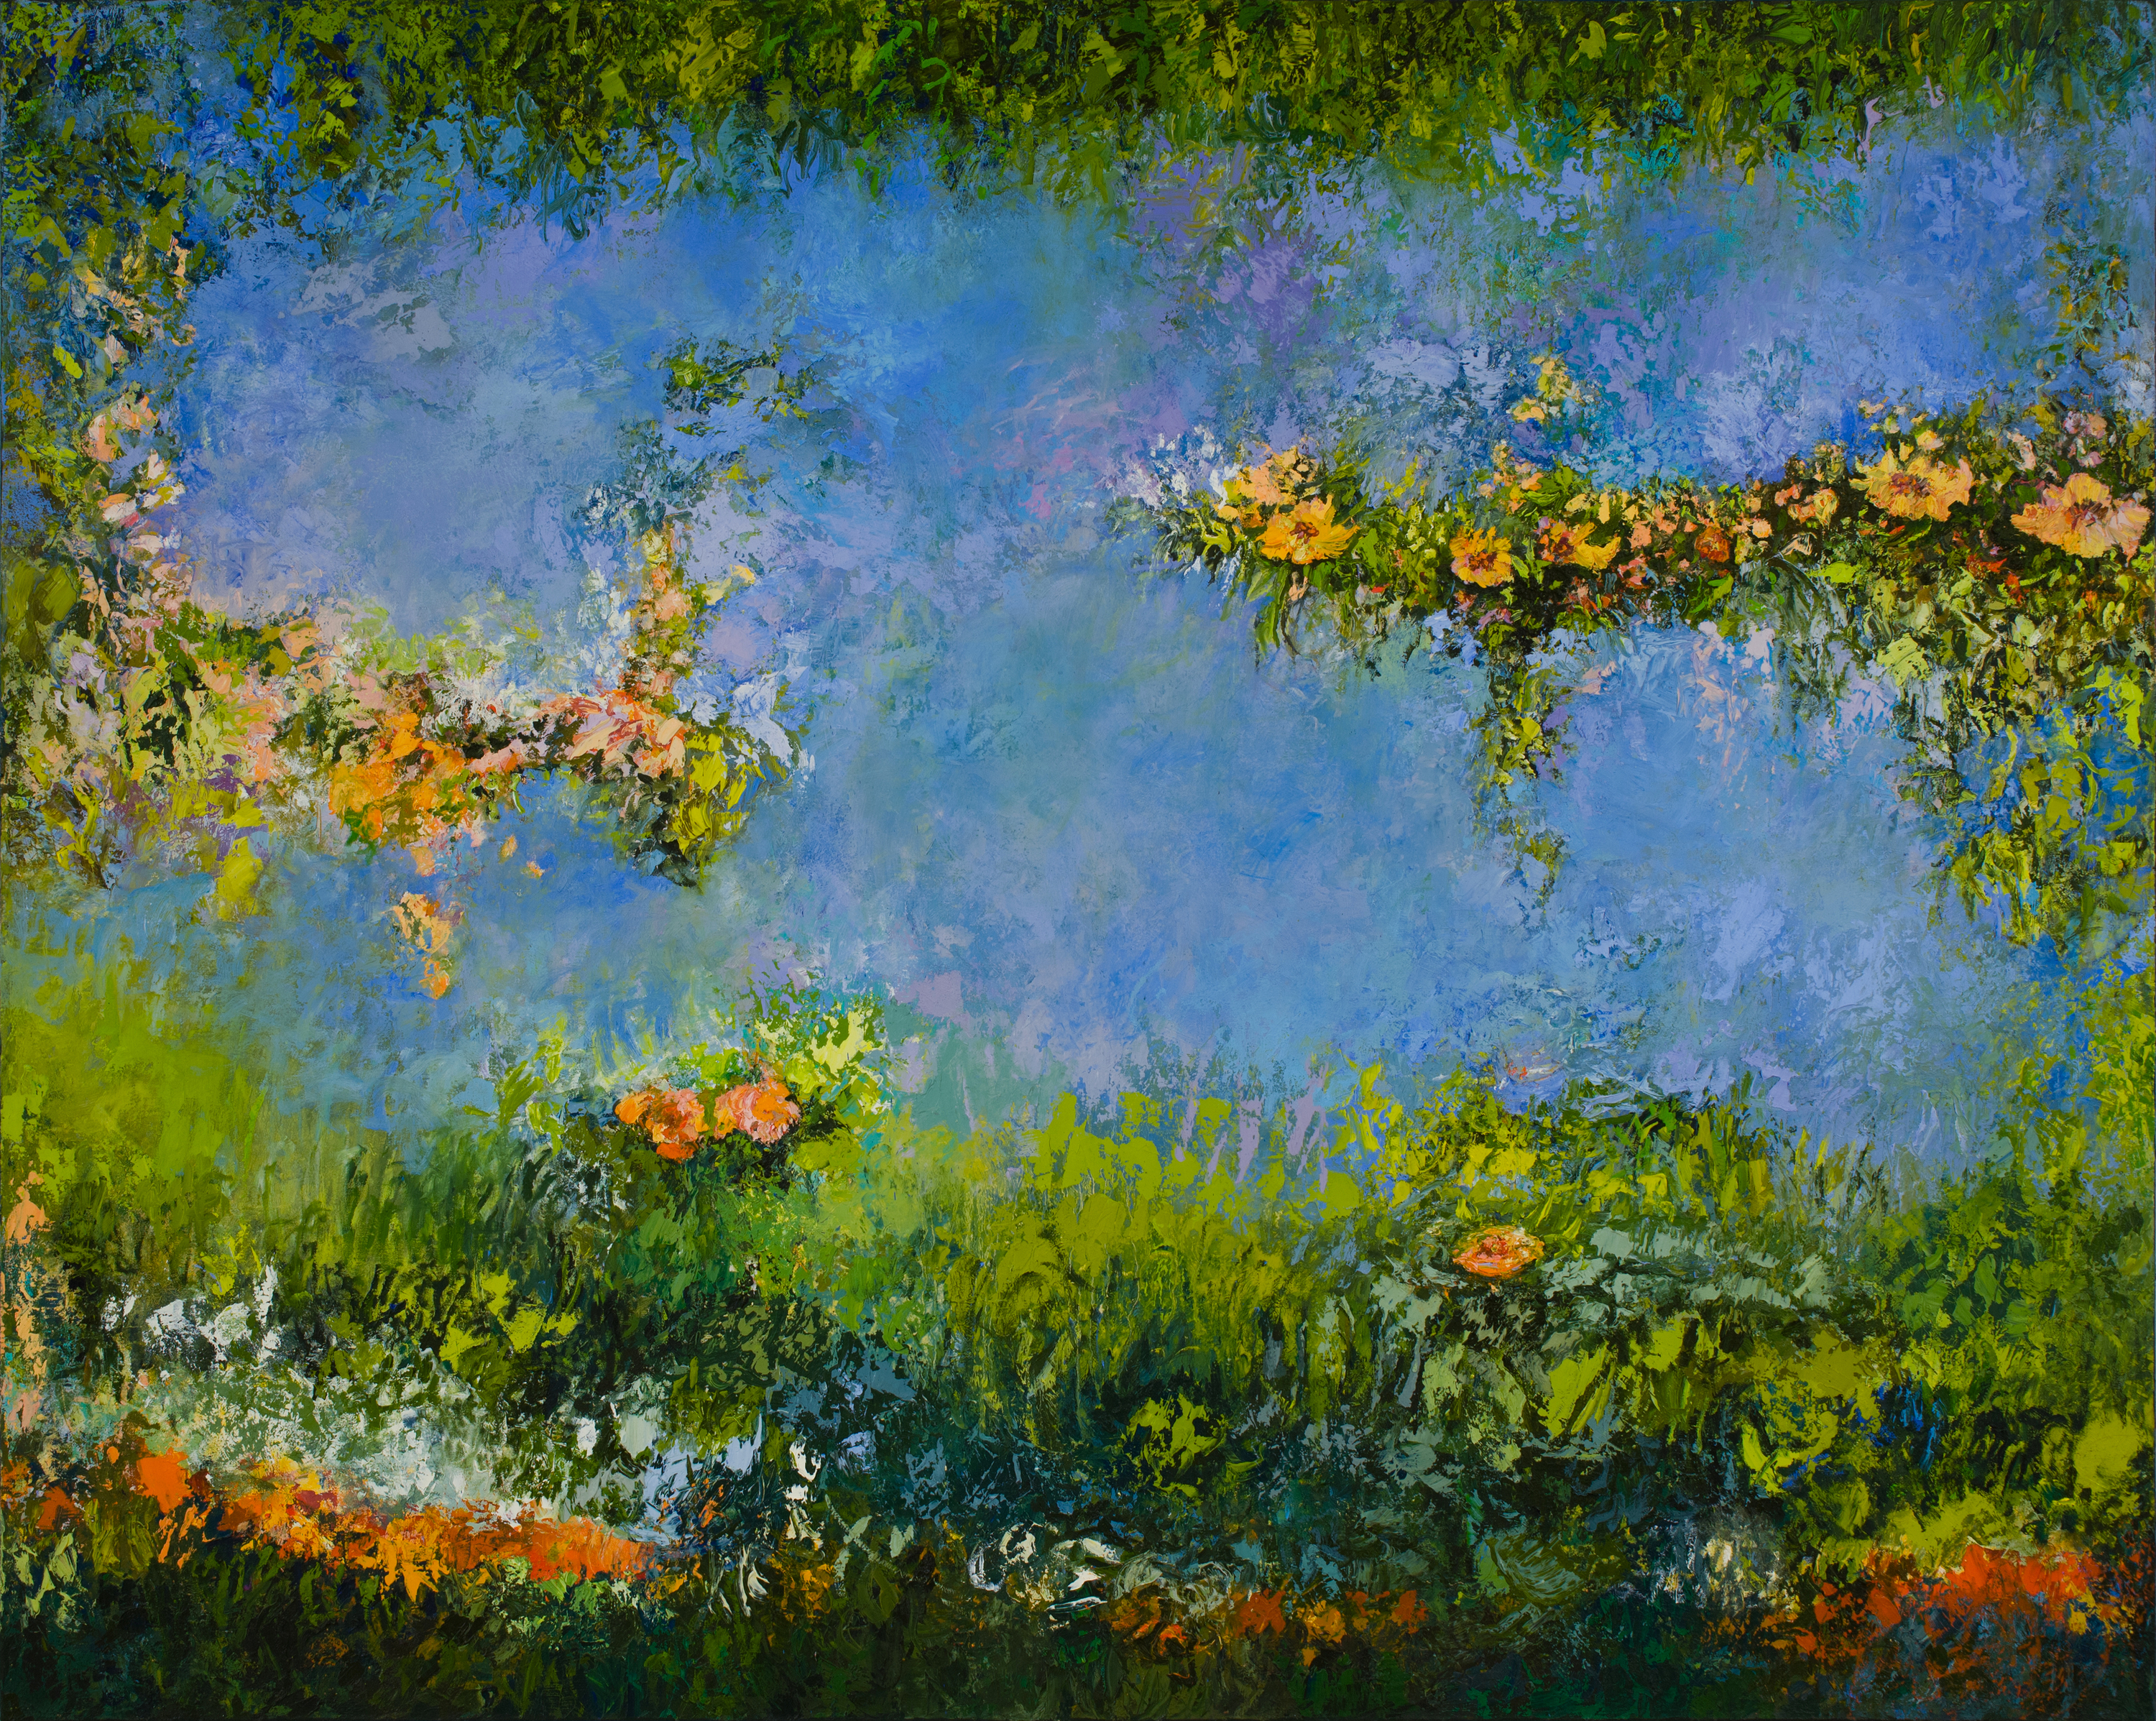 Floral wall art by tracy lynn pristas dream currency online art gallery fvgfzh